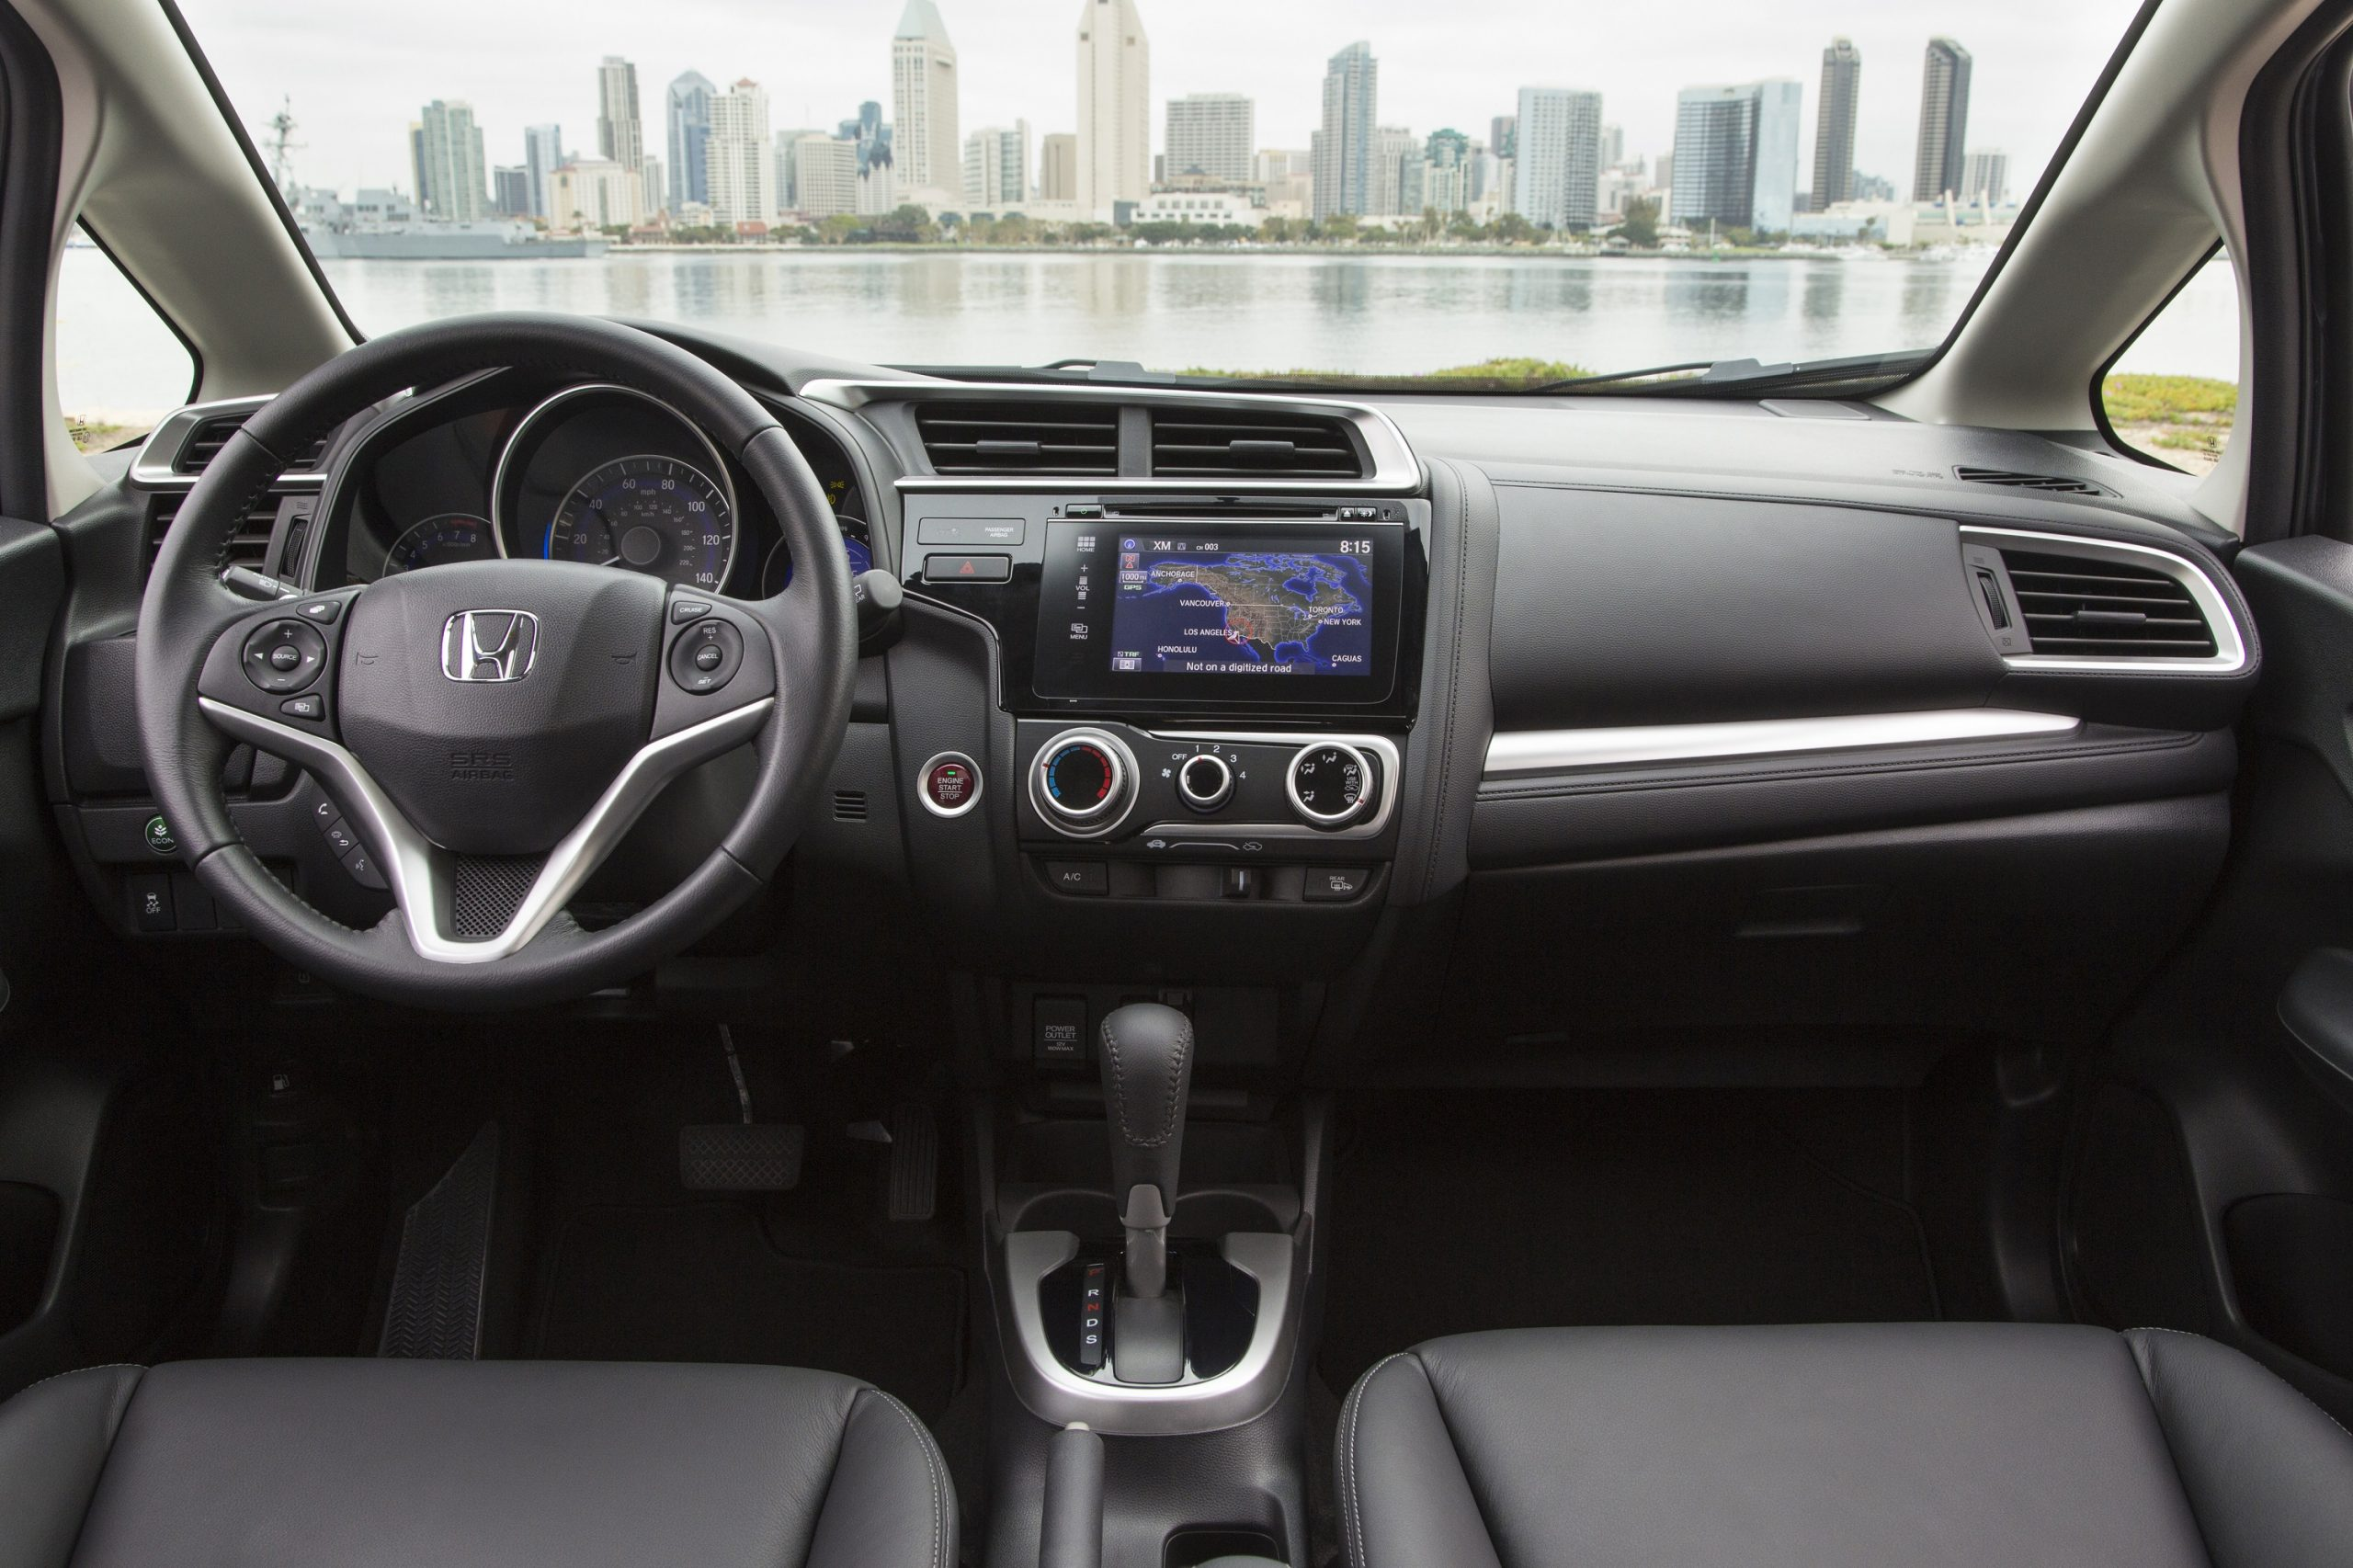 The interior of the 2015 Honda Fit with a conventional layout featuring the infotainment and climate control settings in the middle of the car